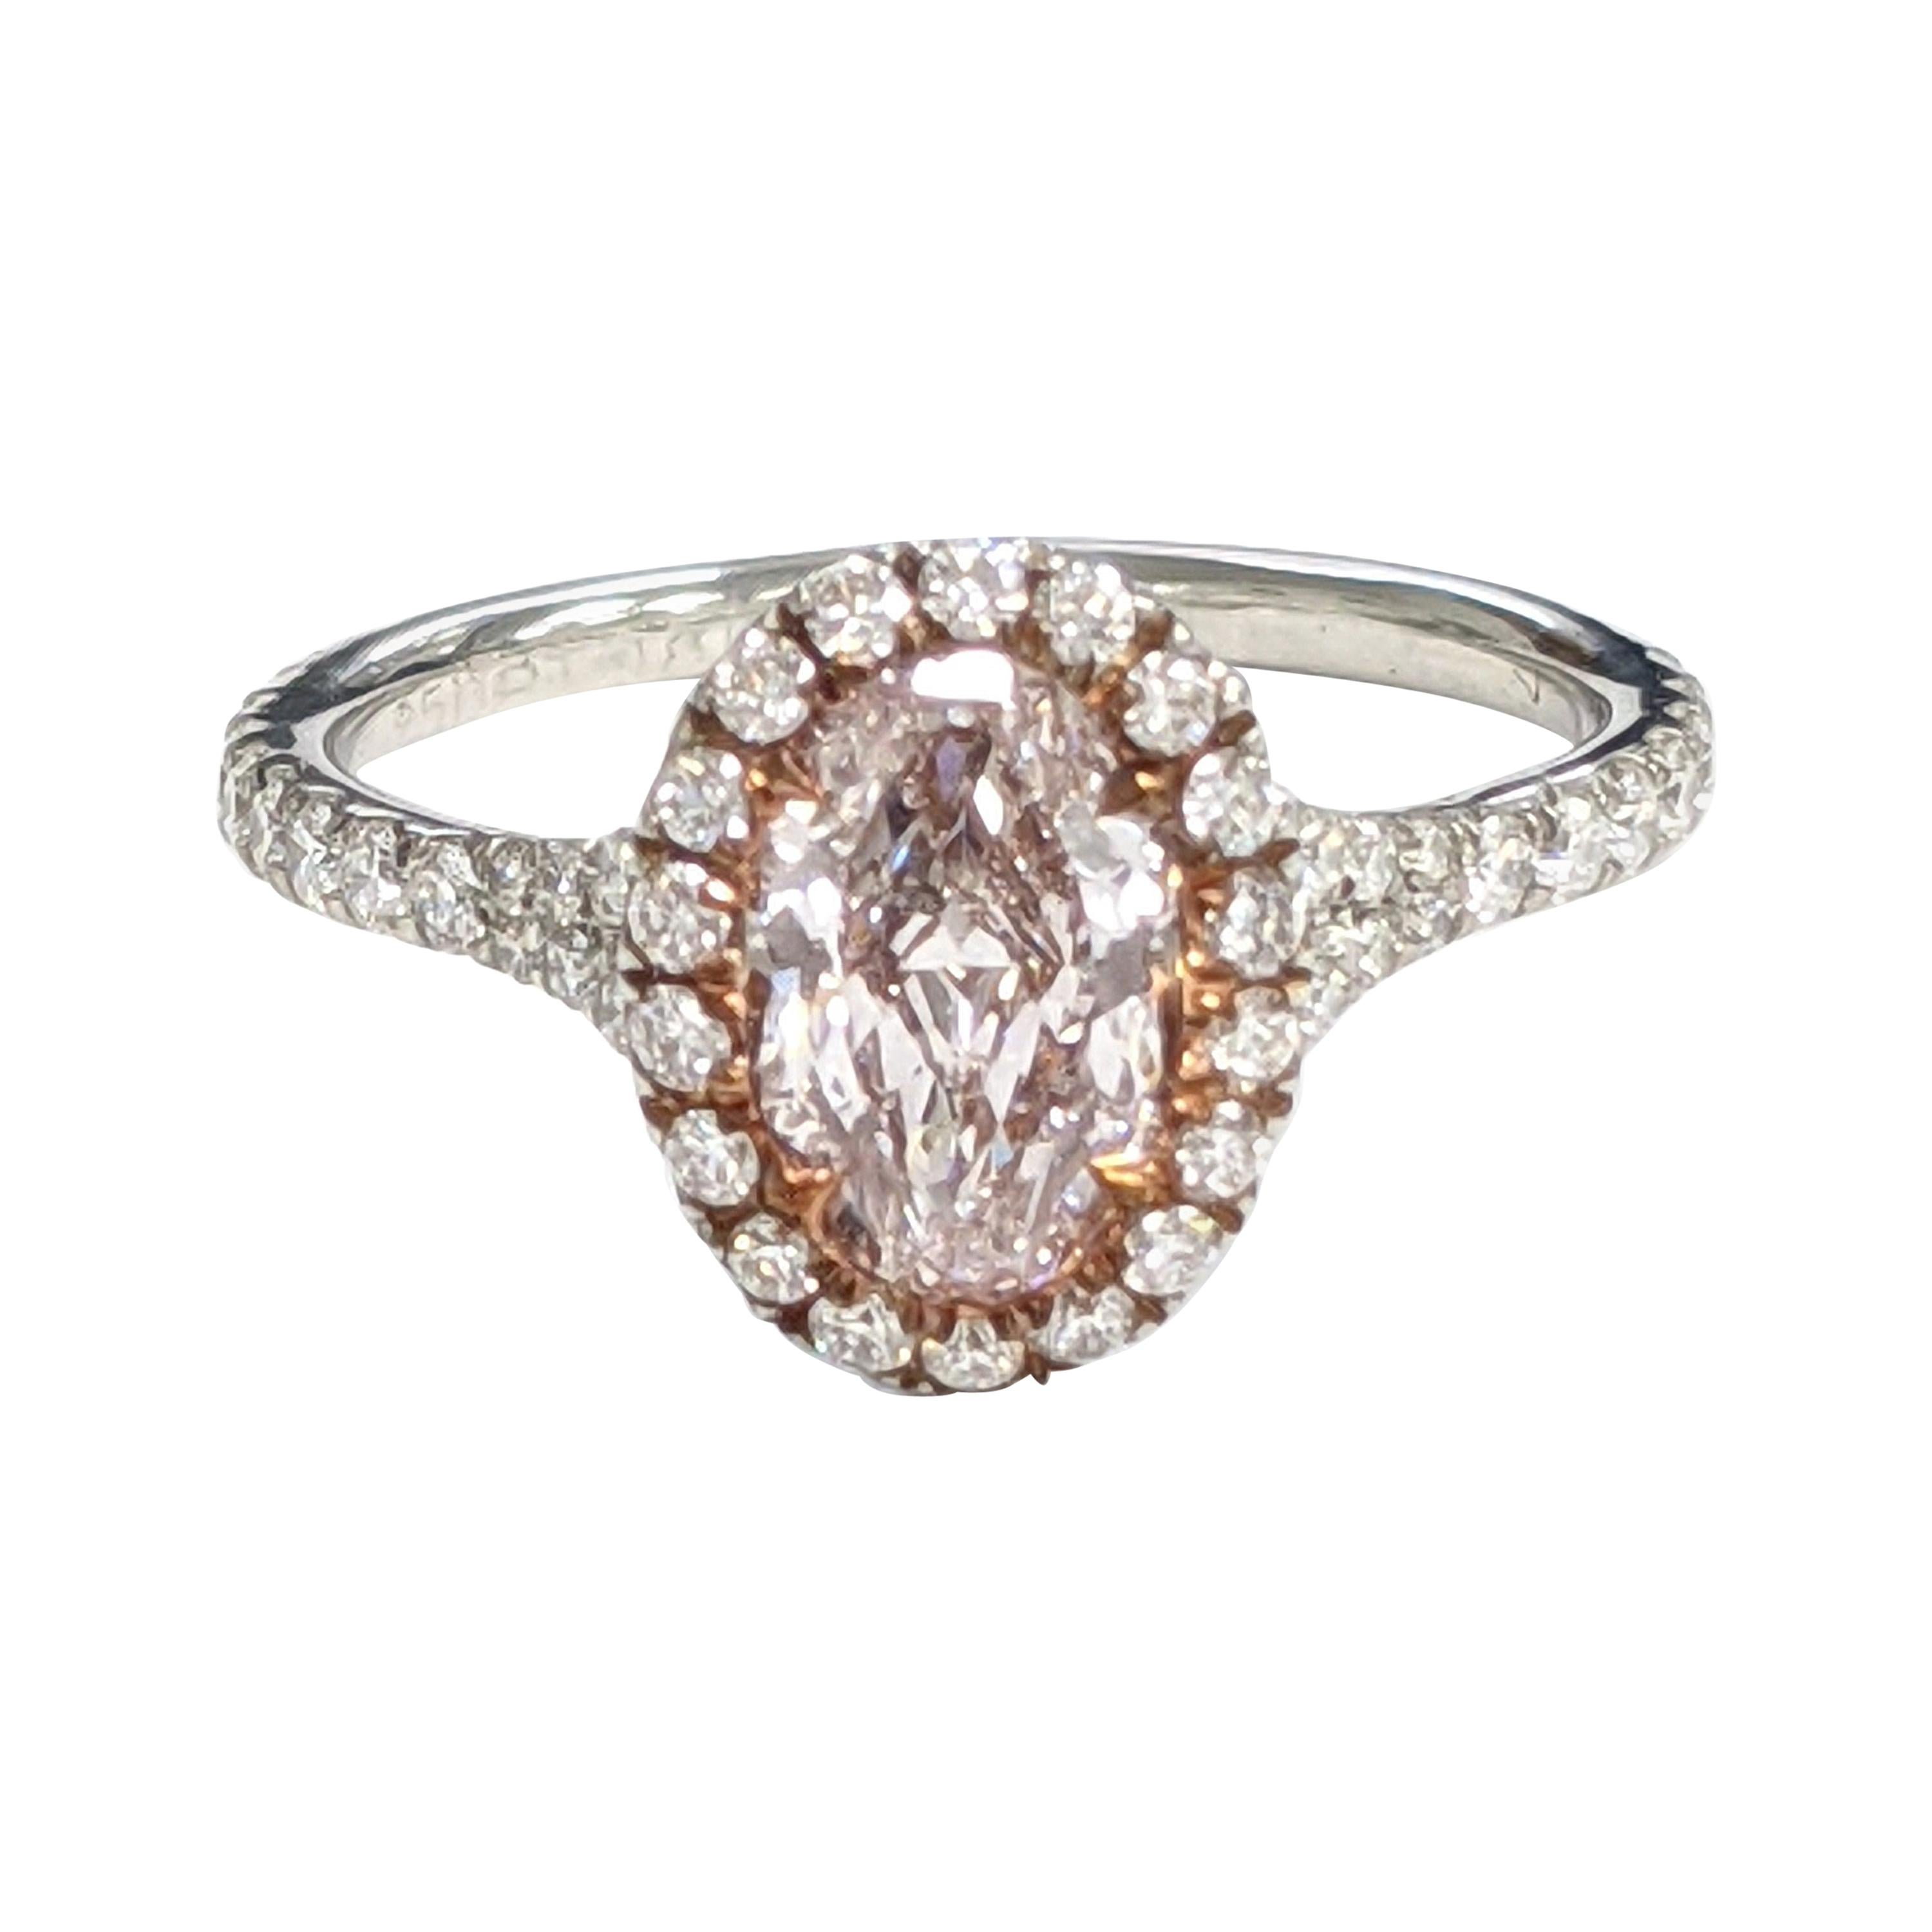 One Carat Light Pink Oval Diamond Ring Internally Flawless, GIA